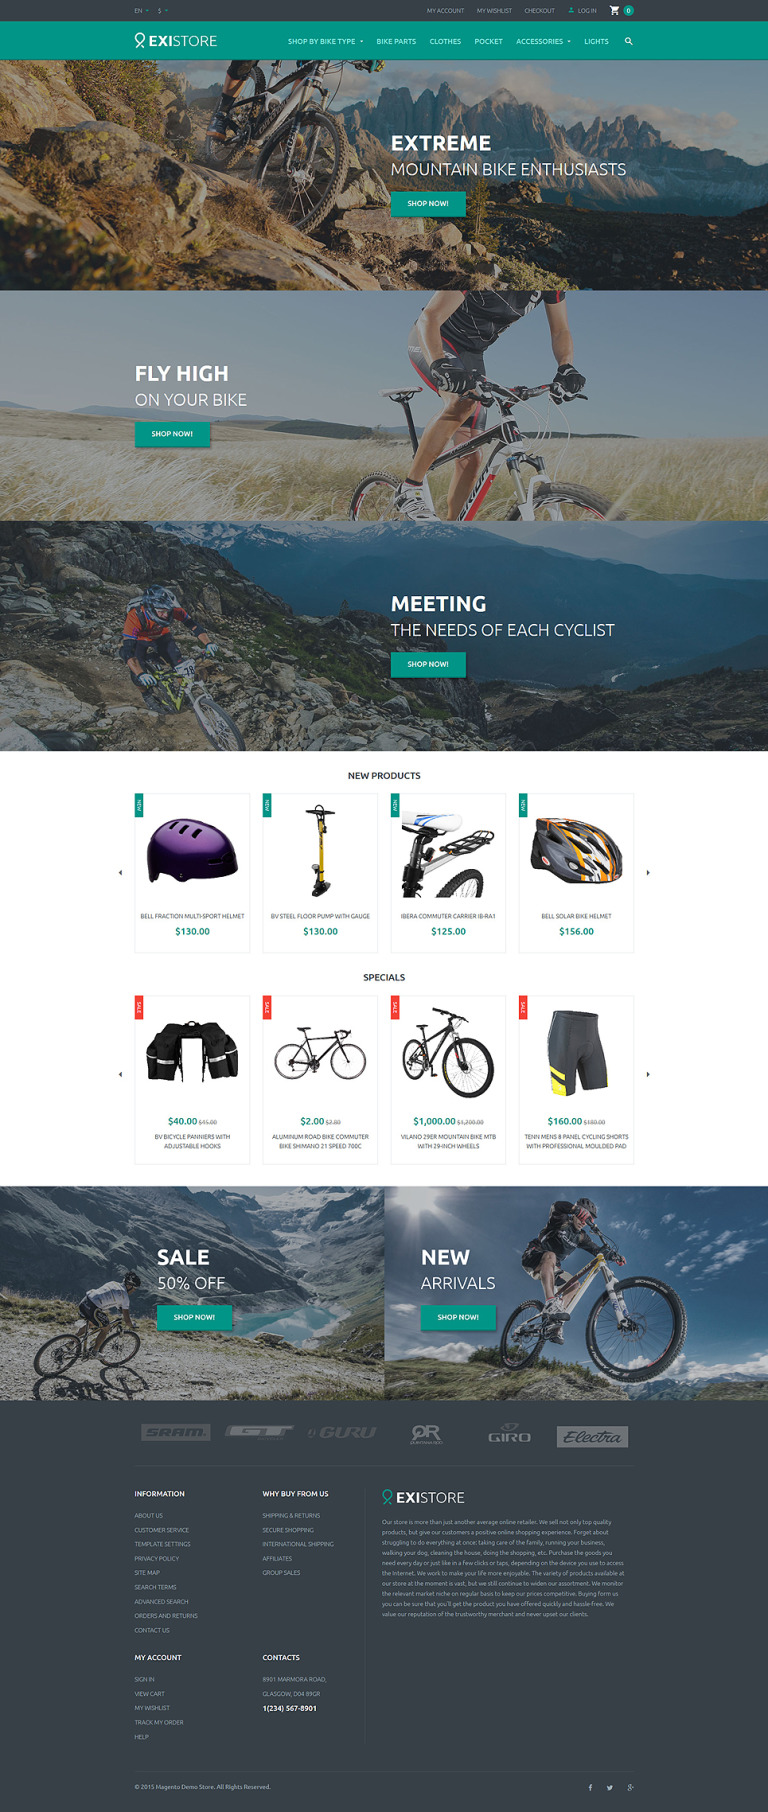 Existore Magento Theme New Screenshots BIG